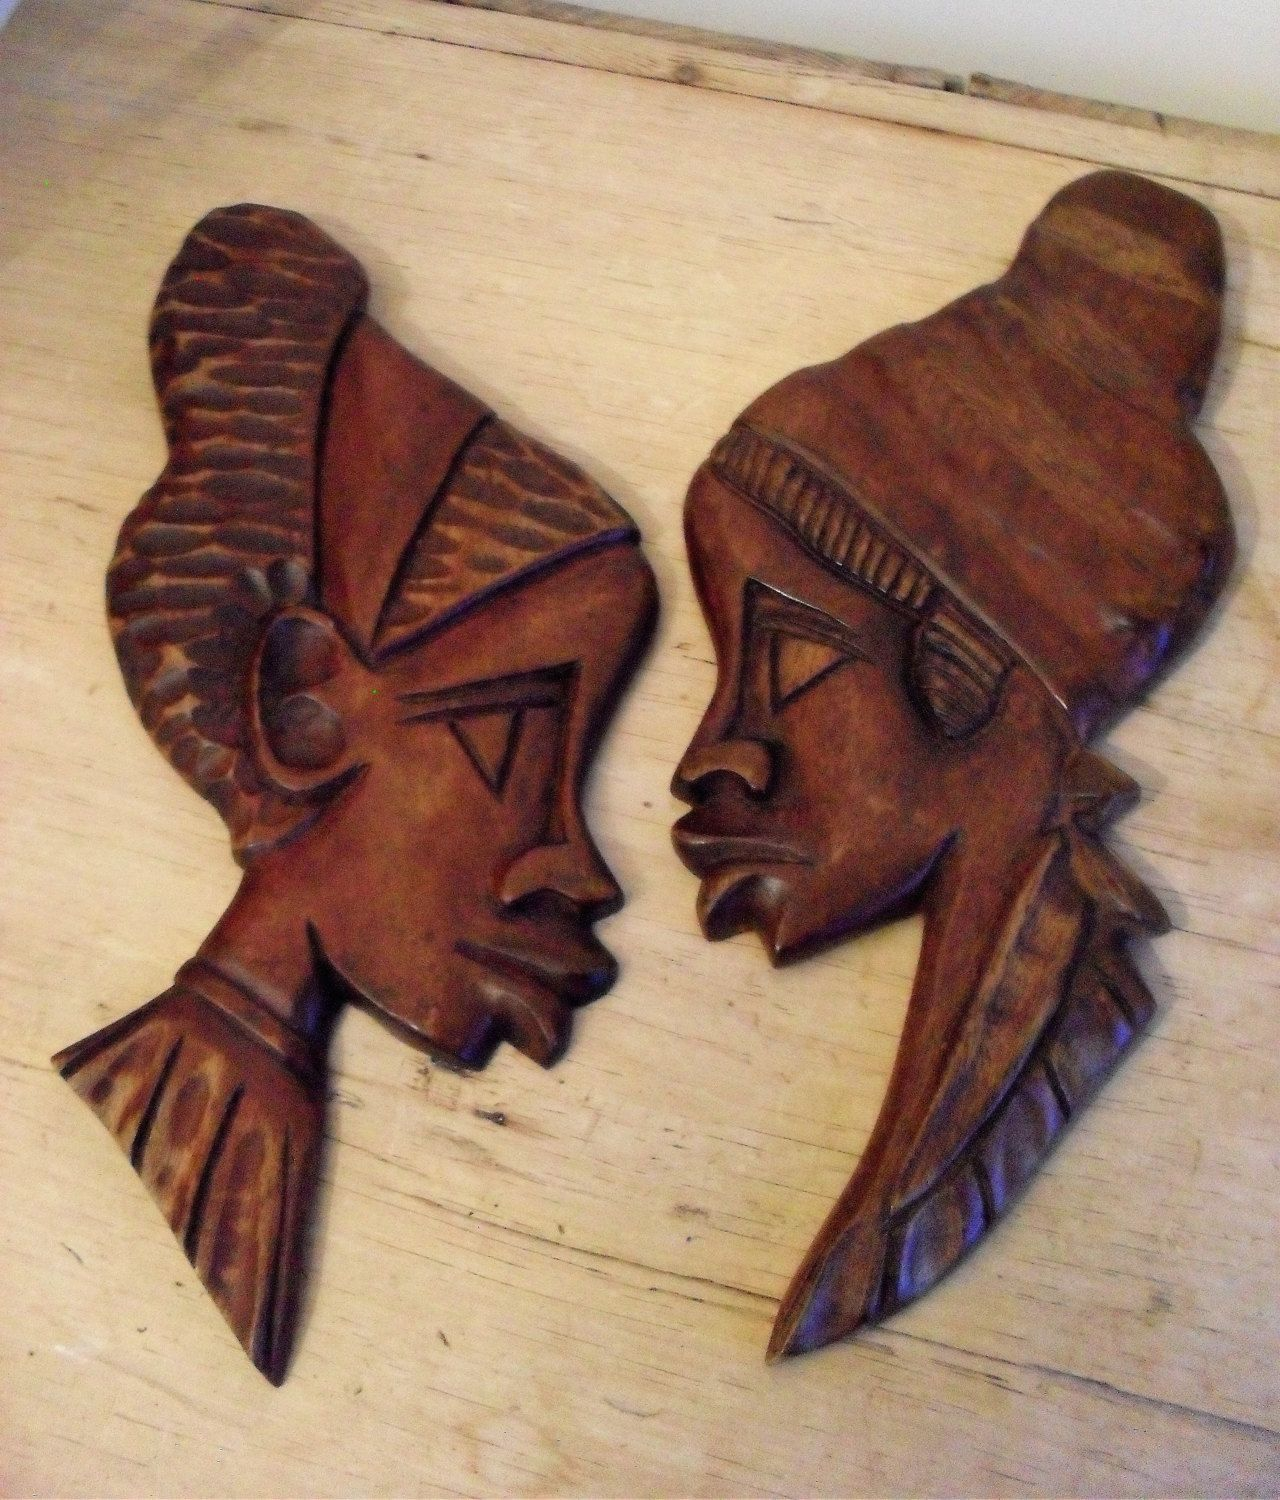 African Carvings Pair Figural Wall Hangings Hand Carved Wood Etsy African Carving African Decor Hand Carved Wood